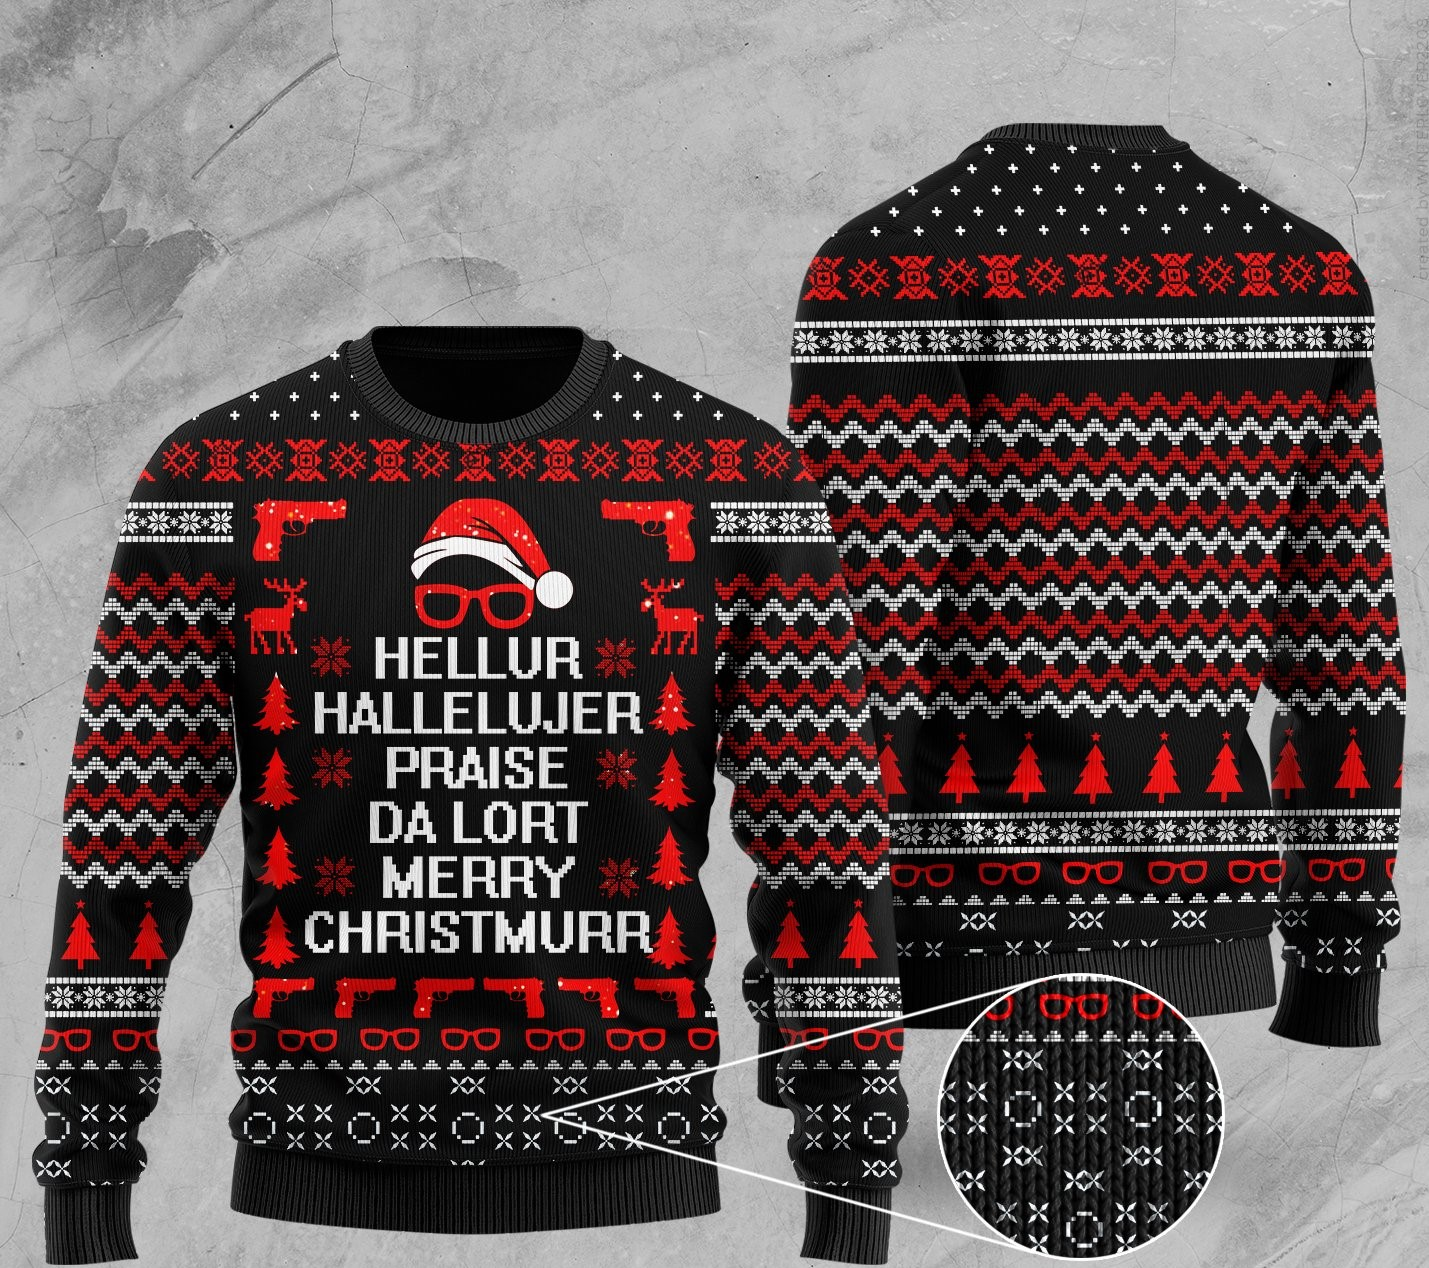 hellur hallelujer praise da lort merry christmas all over print ugly christmas sweater 2 - Copy (3)